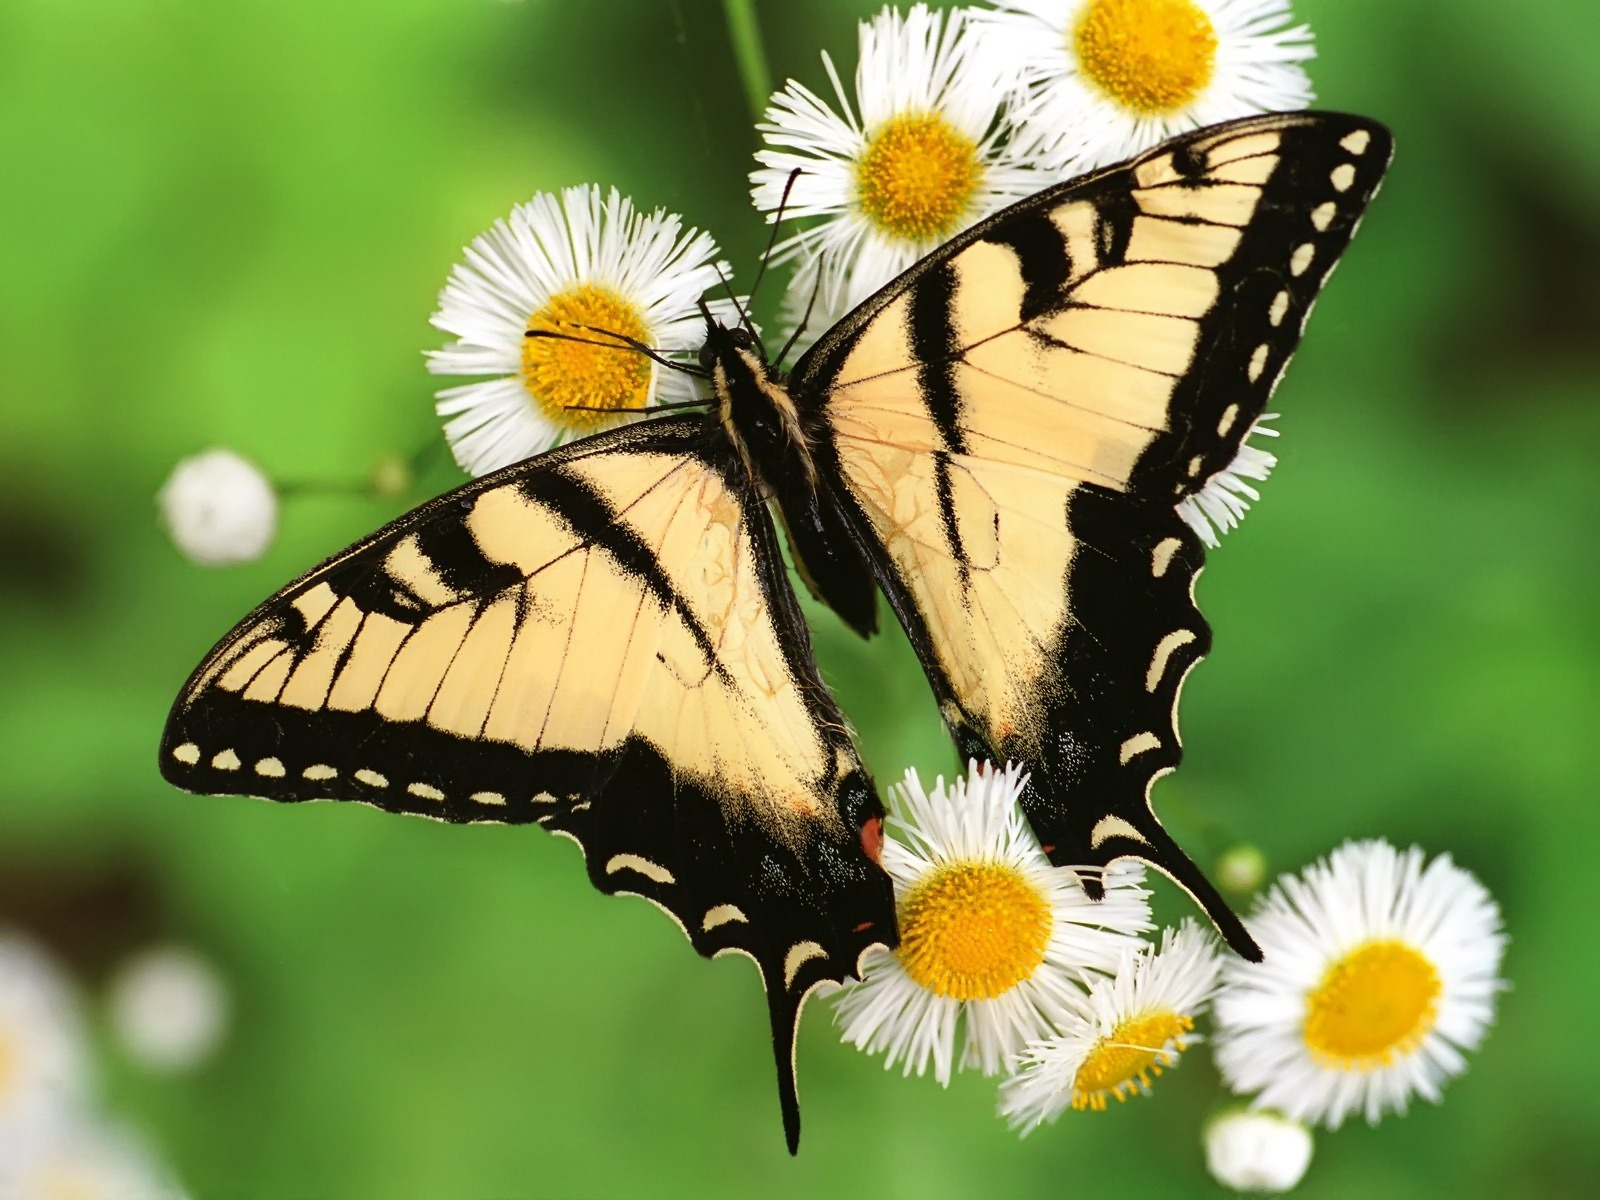 Tiger Swallowtail Butterfly Wallpaper Butterflies Animals Wallpapers     Tiger Swallowtail Butterfly Wallpaper Butterflies Animals Wallpapers